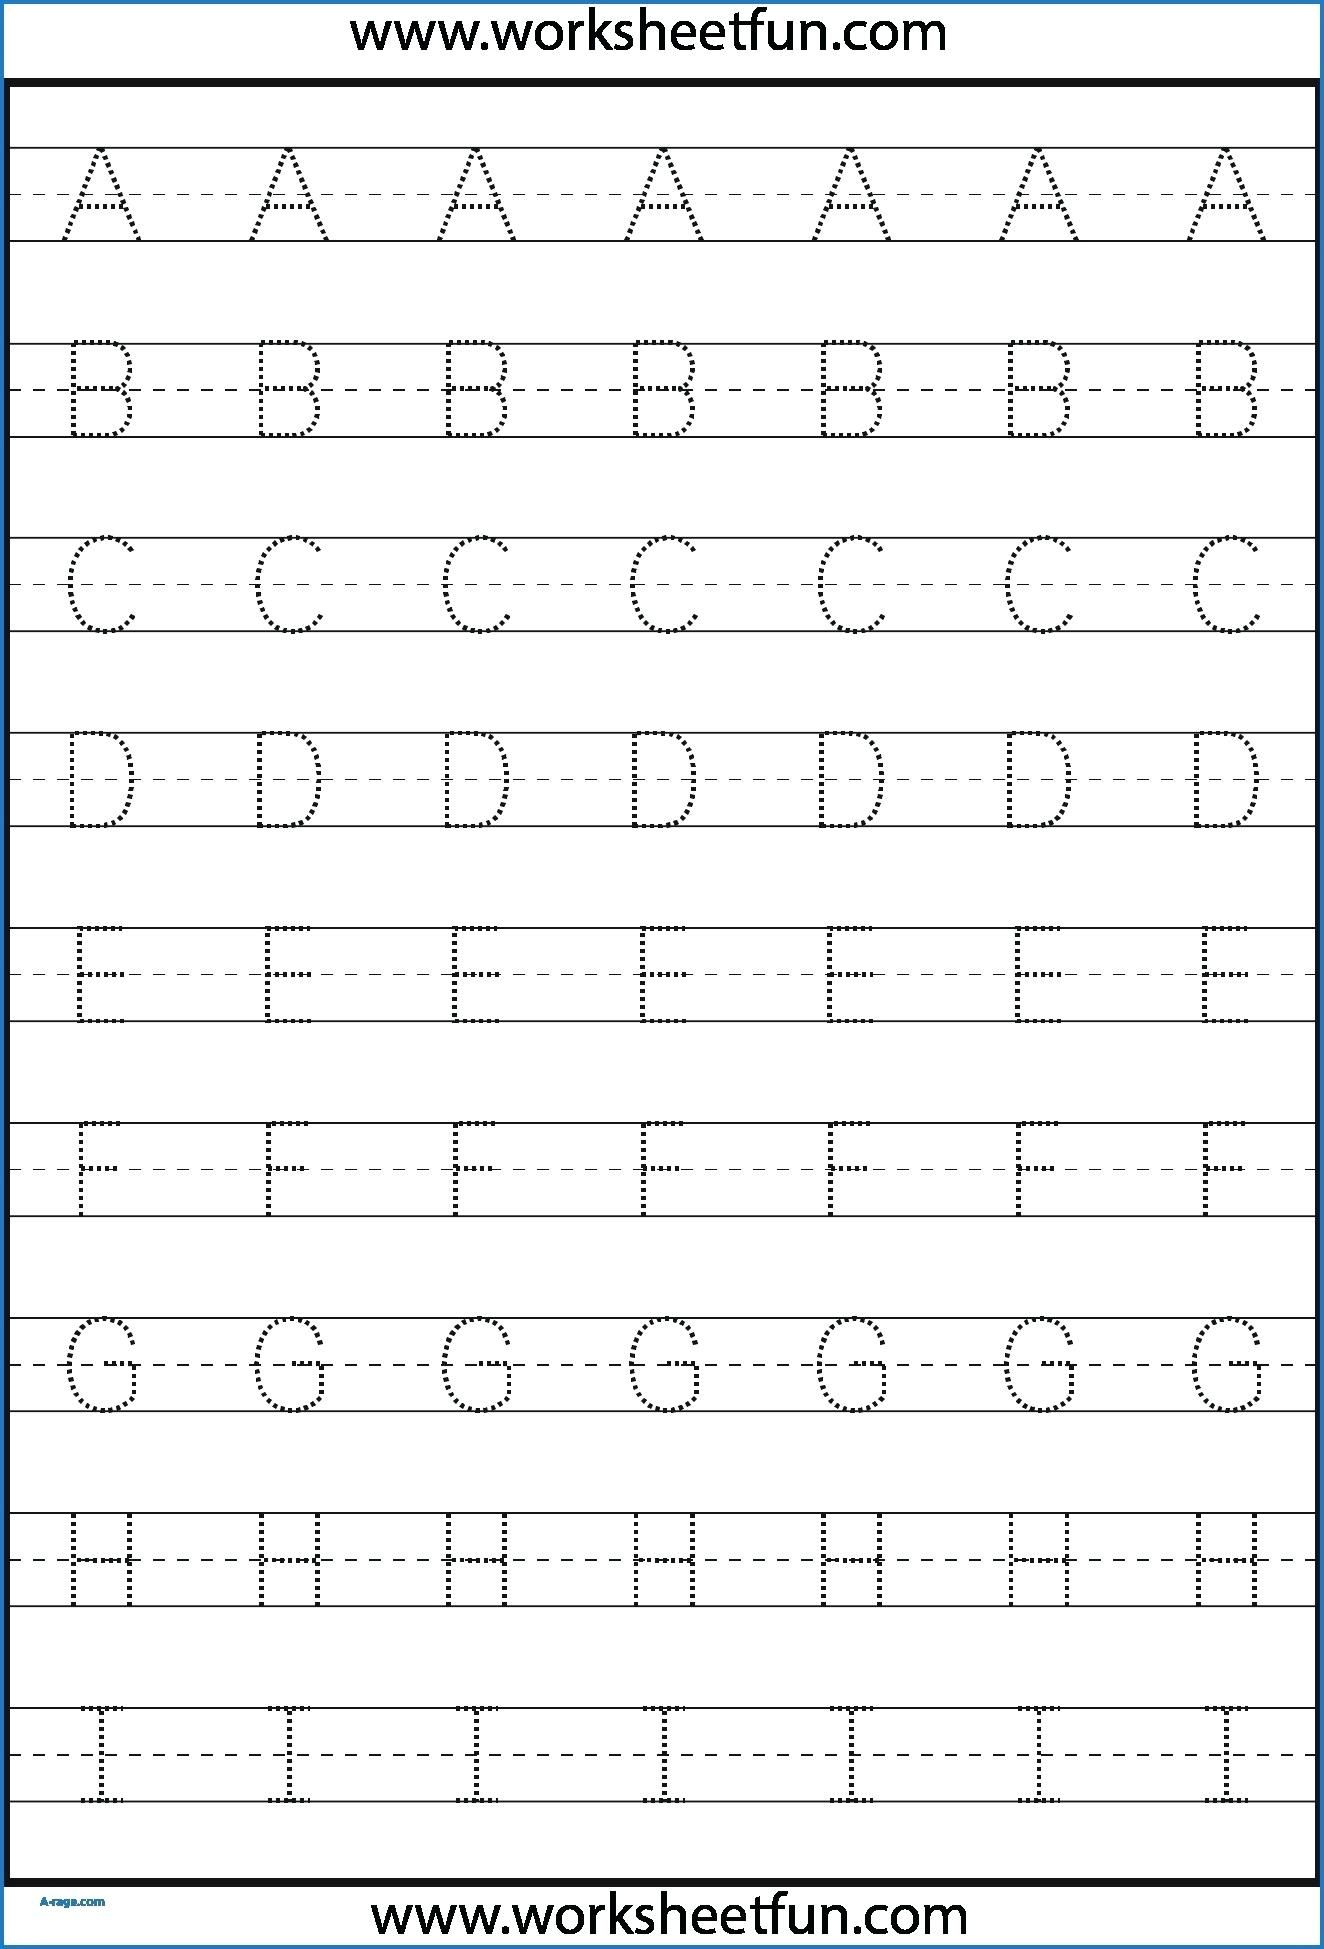 Kindergarten Letter Tracing Worksheets Pdf - Wallpaper Image in Free Printable Tracing Letters And Numbers Worksheets